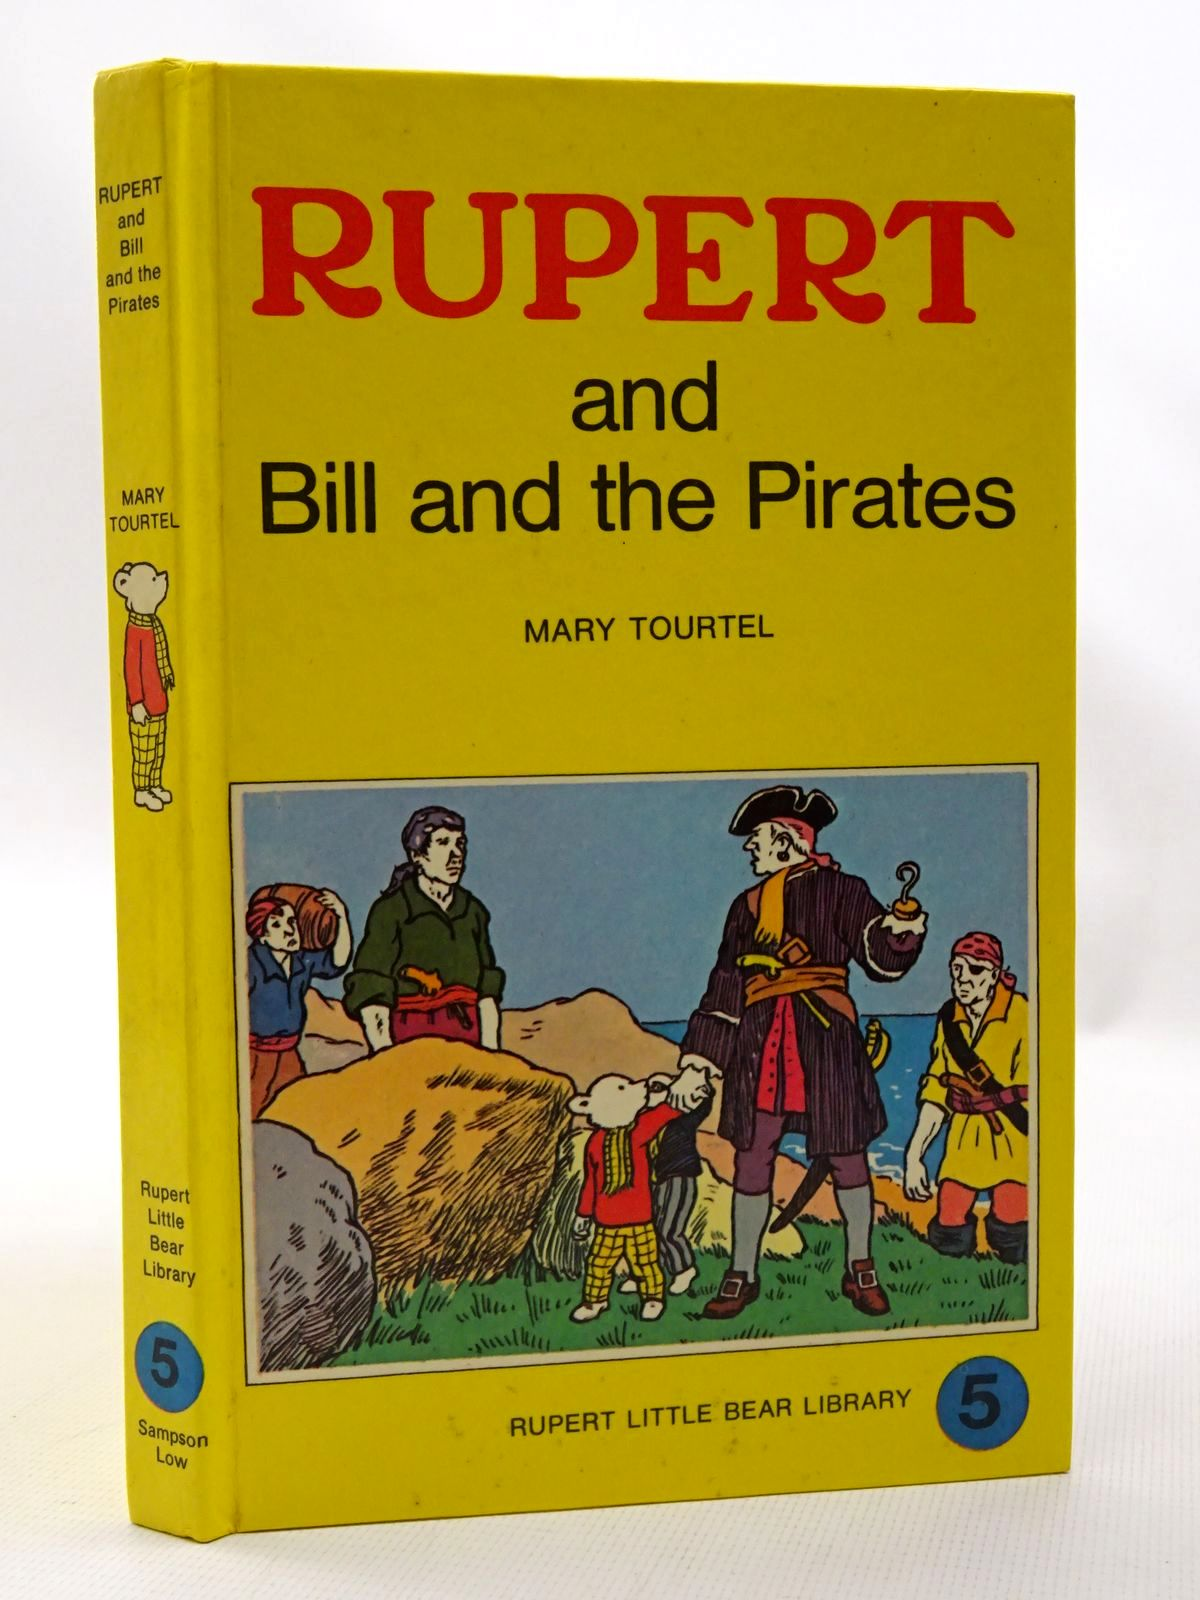 Photo of RUPERT AND BILL AND THE PIRATES - RUPERT LITTLE BEAR LIBRARY No. 5 (WOOLWORTH)- Stock Number: 1610118